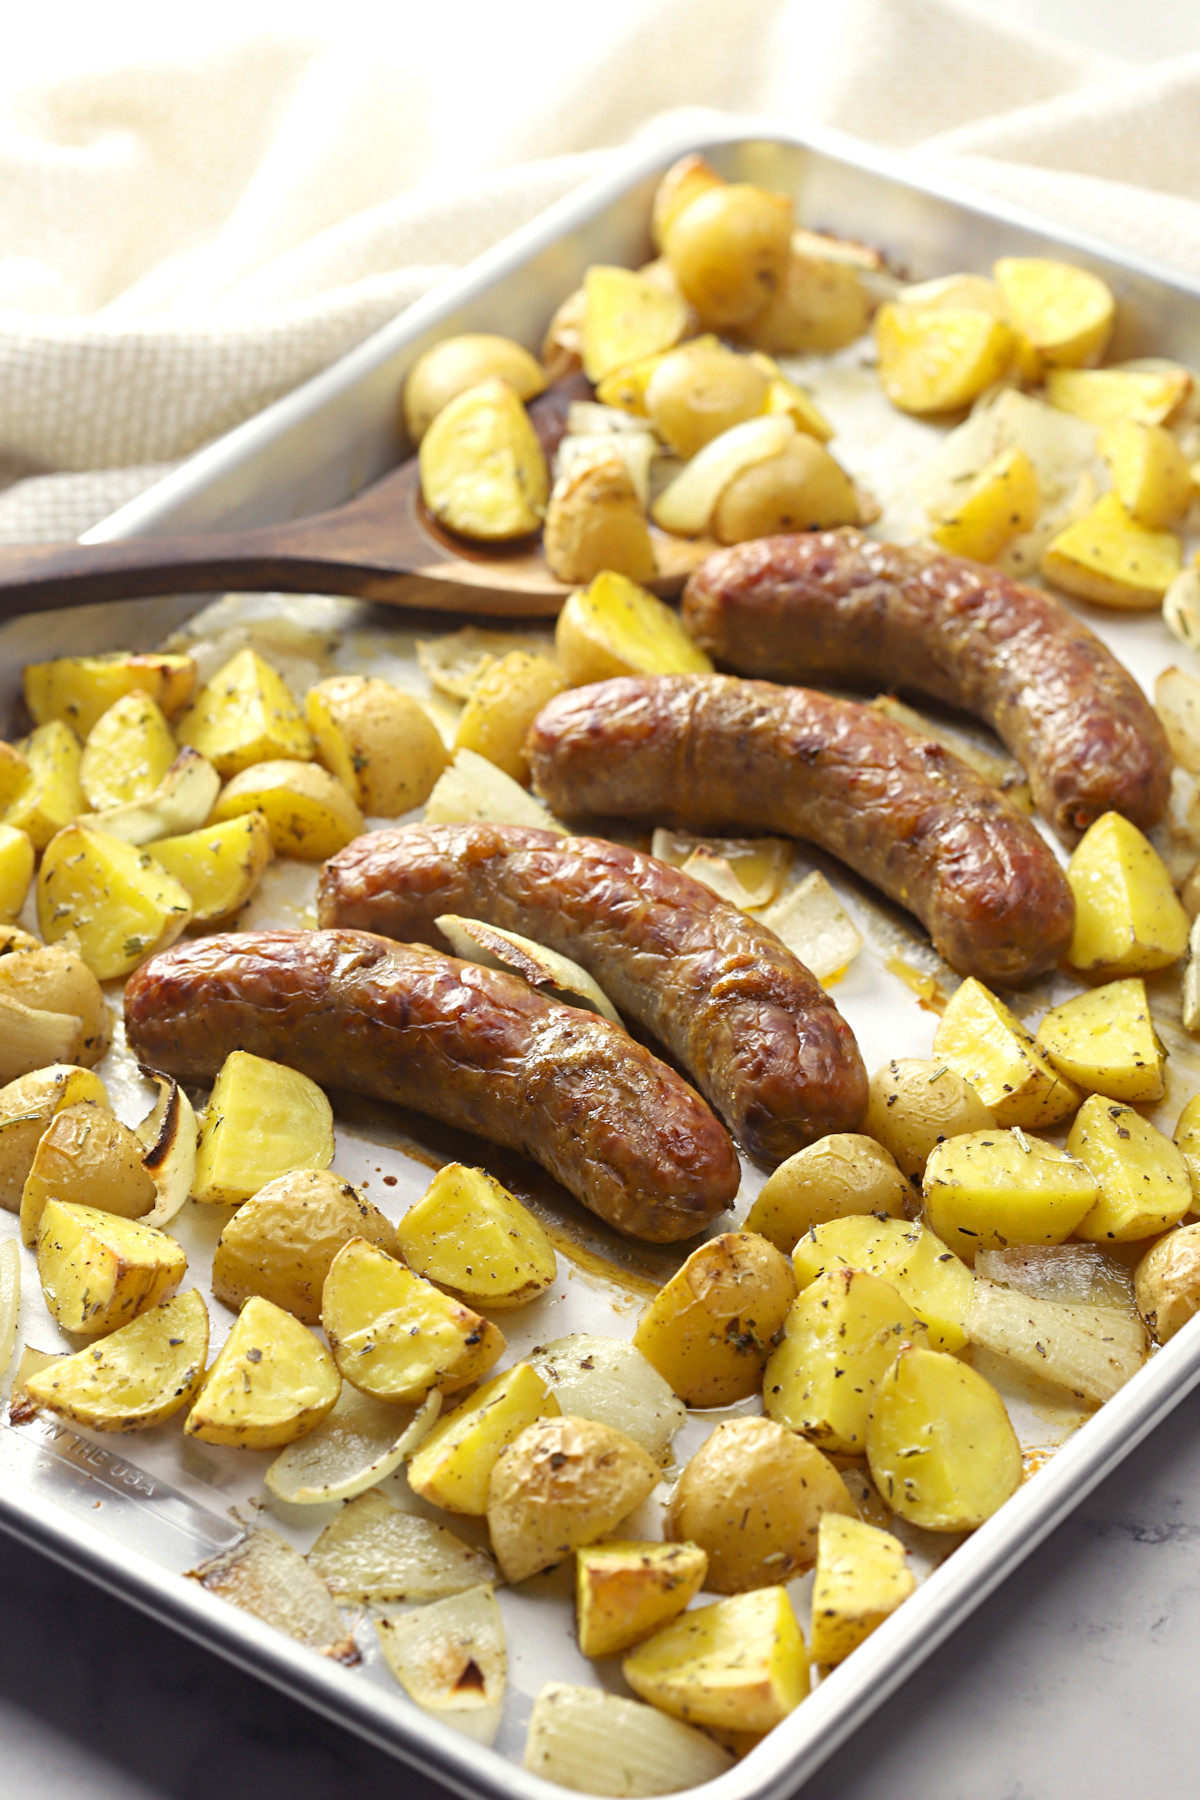 Sheet pan filled with italian sausage and potatoes.